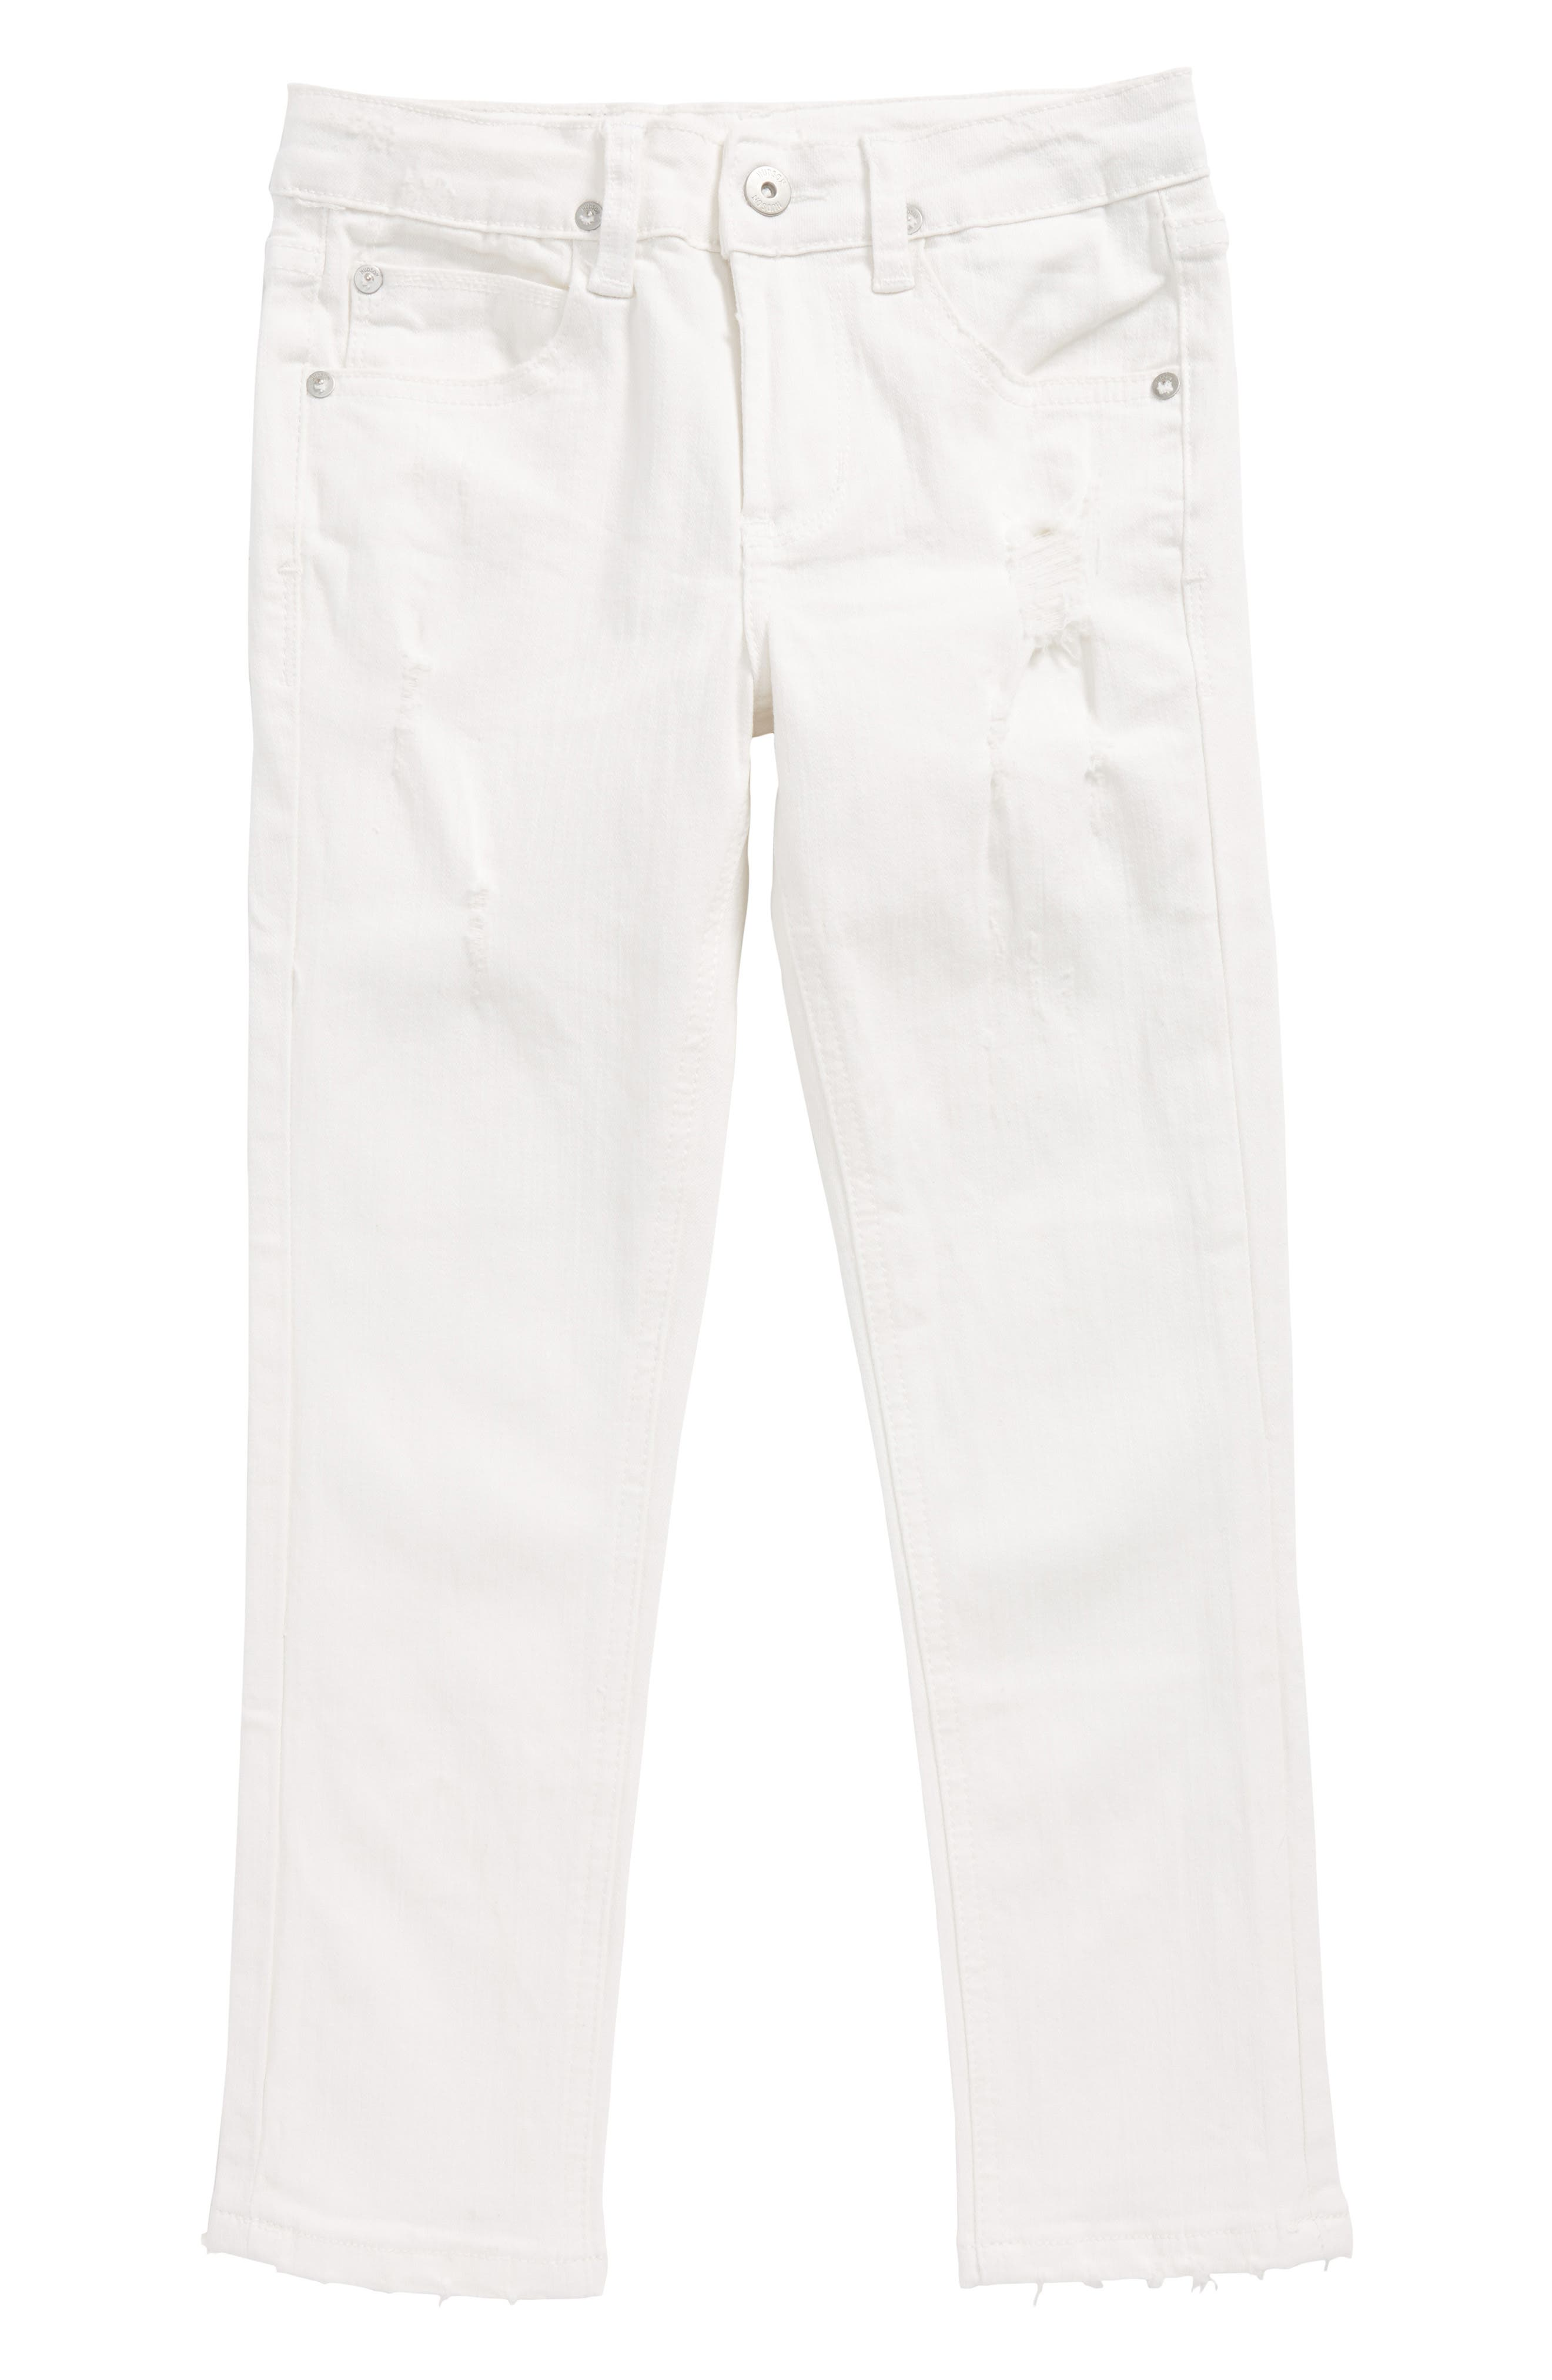 Jagger Slim Straight Leg Jeans,                             Main thumbnail 1, color,                             Washed Out